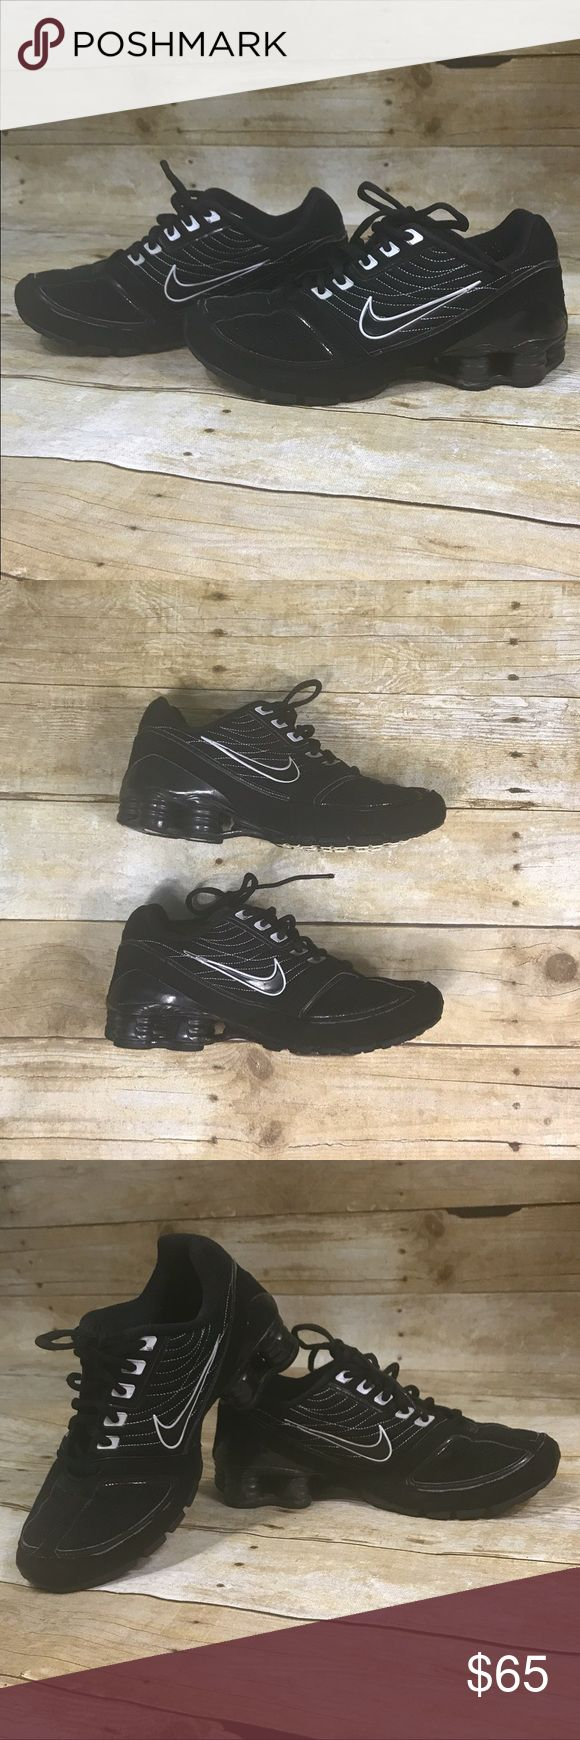 Black Nike Shocks- size 8 Black Nike Shocks Nike Shoes Sneakers